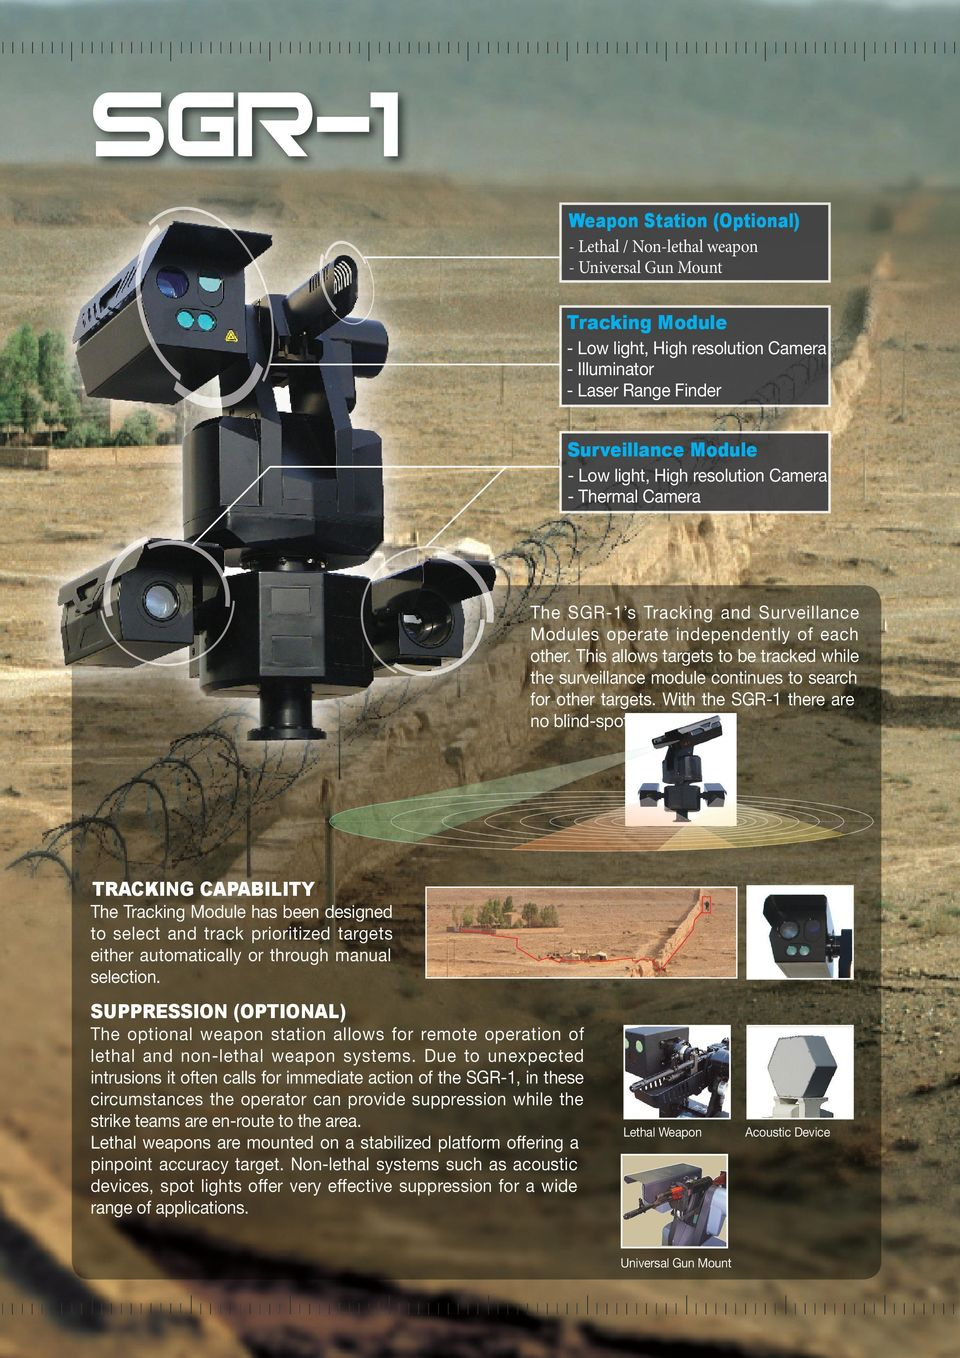 This allows targets to be tracked while the surveillance module continues to search for other targets. With the SGR-1 there are no blind-spots.